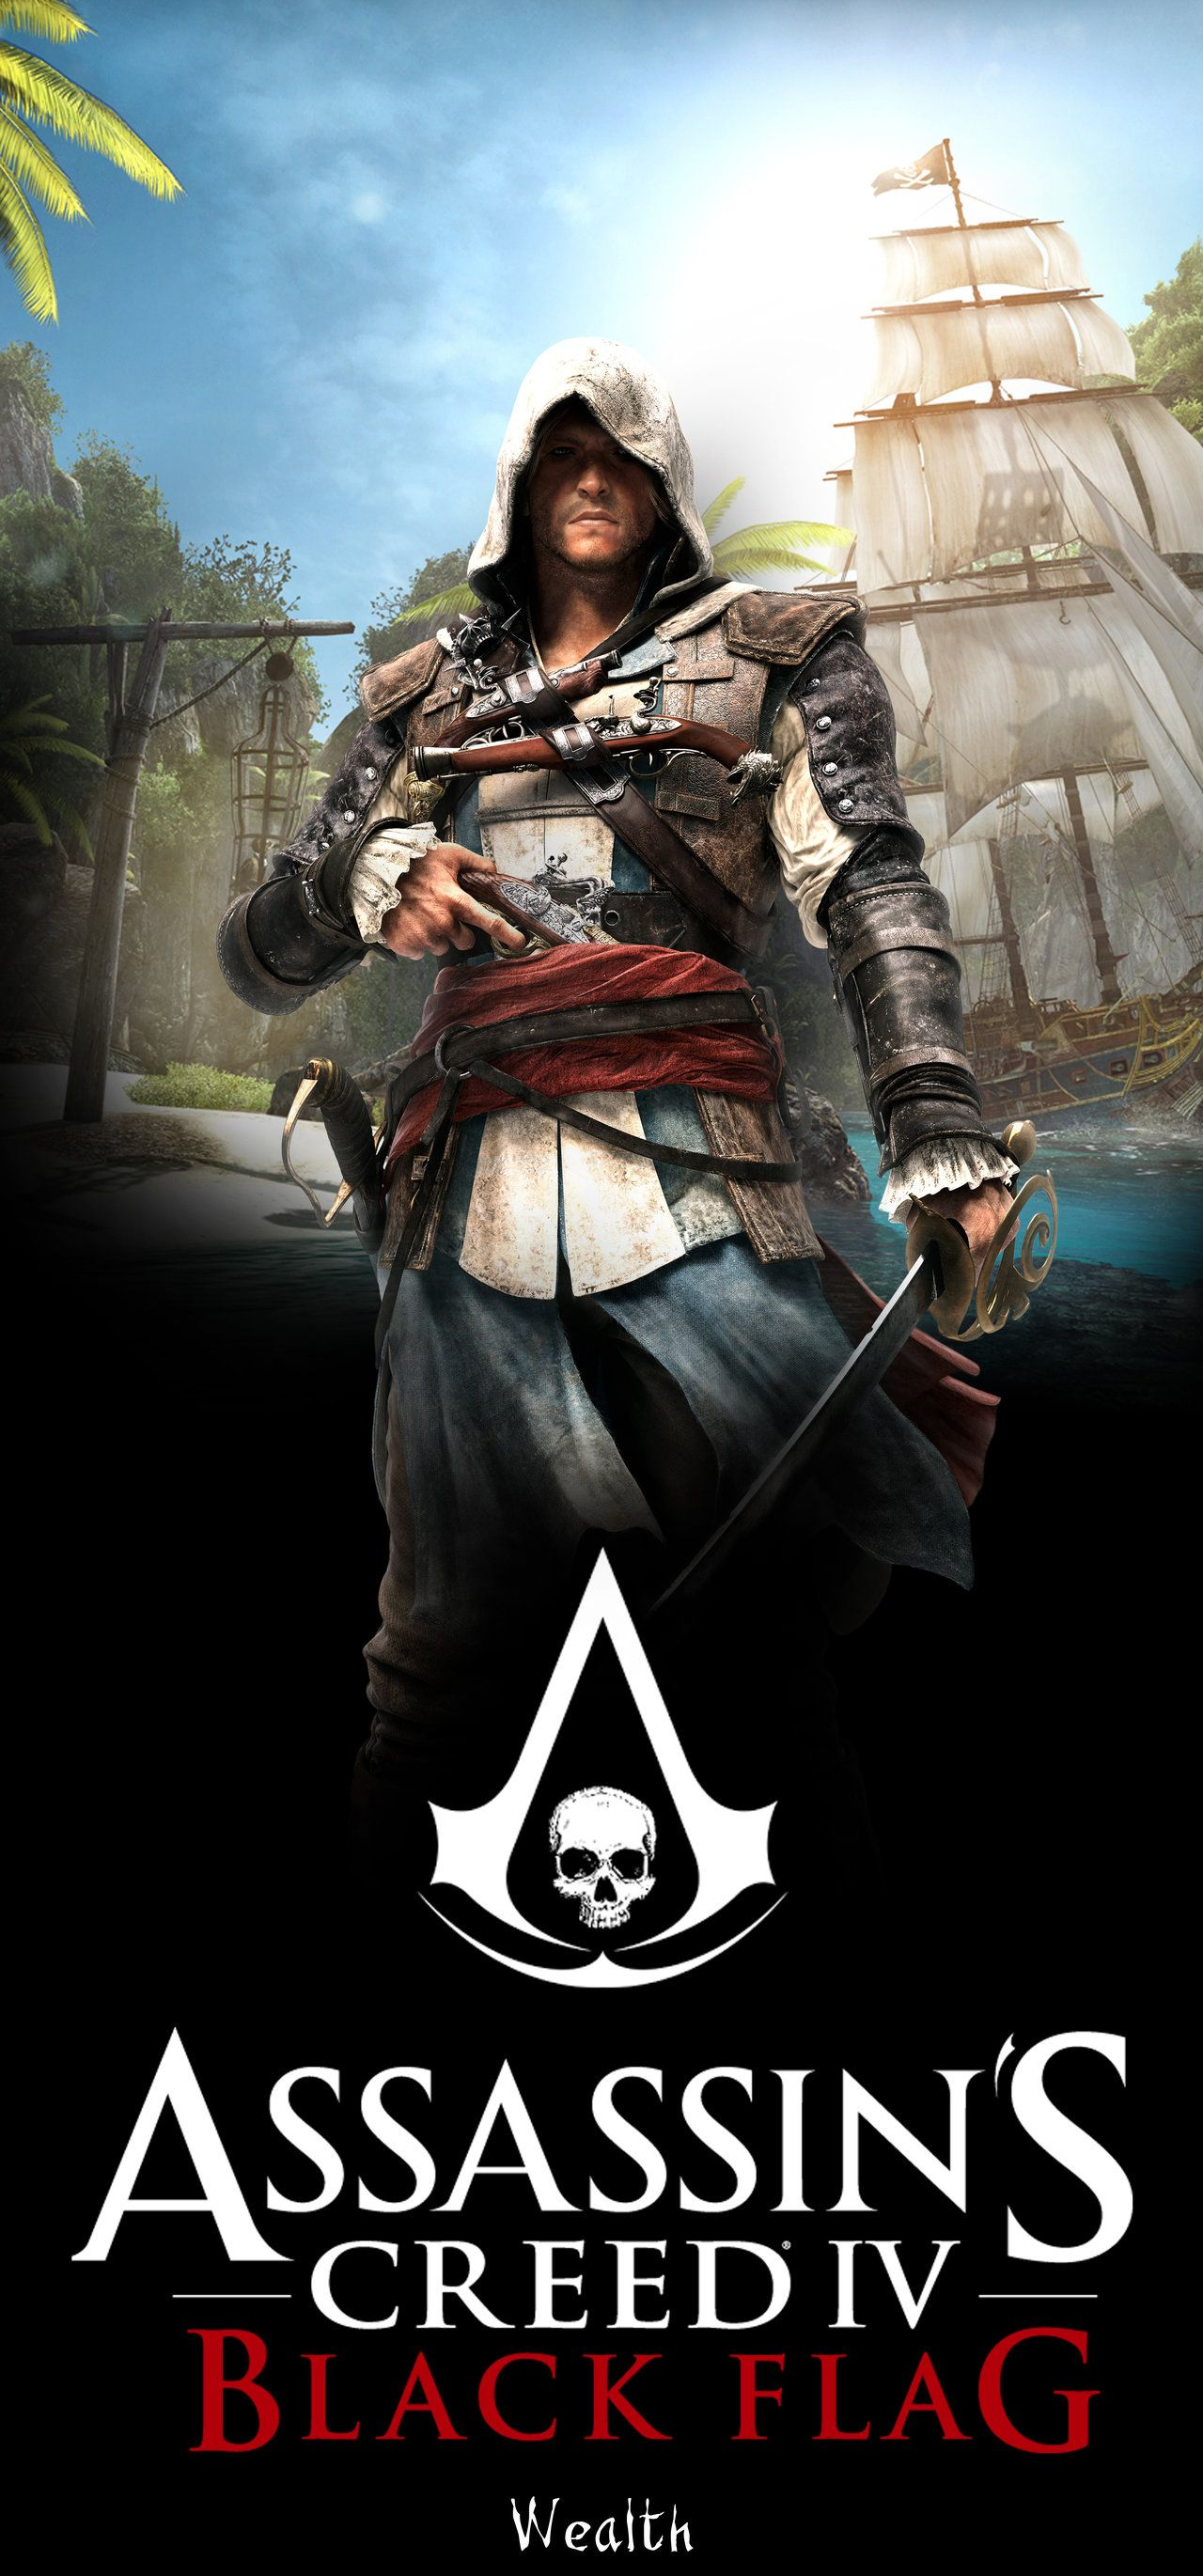 Assassin S Creed Poster Large Edward By Ven93 Deviantart Com On Deviantart Assassins Creed Black Flag Assassins Creed Assassins Creed Artwork